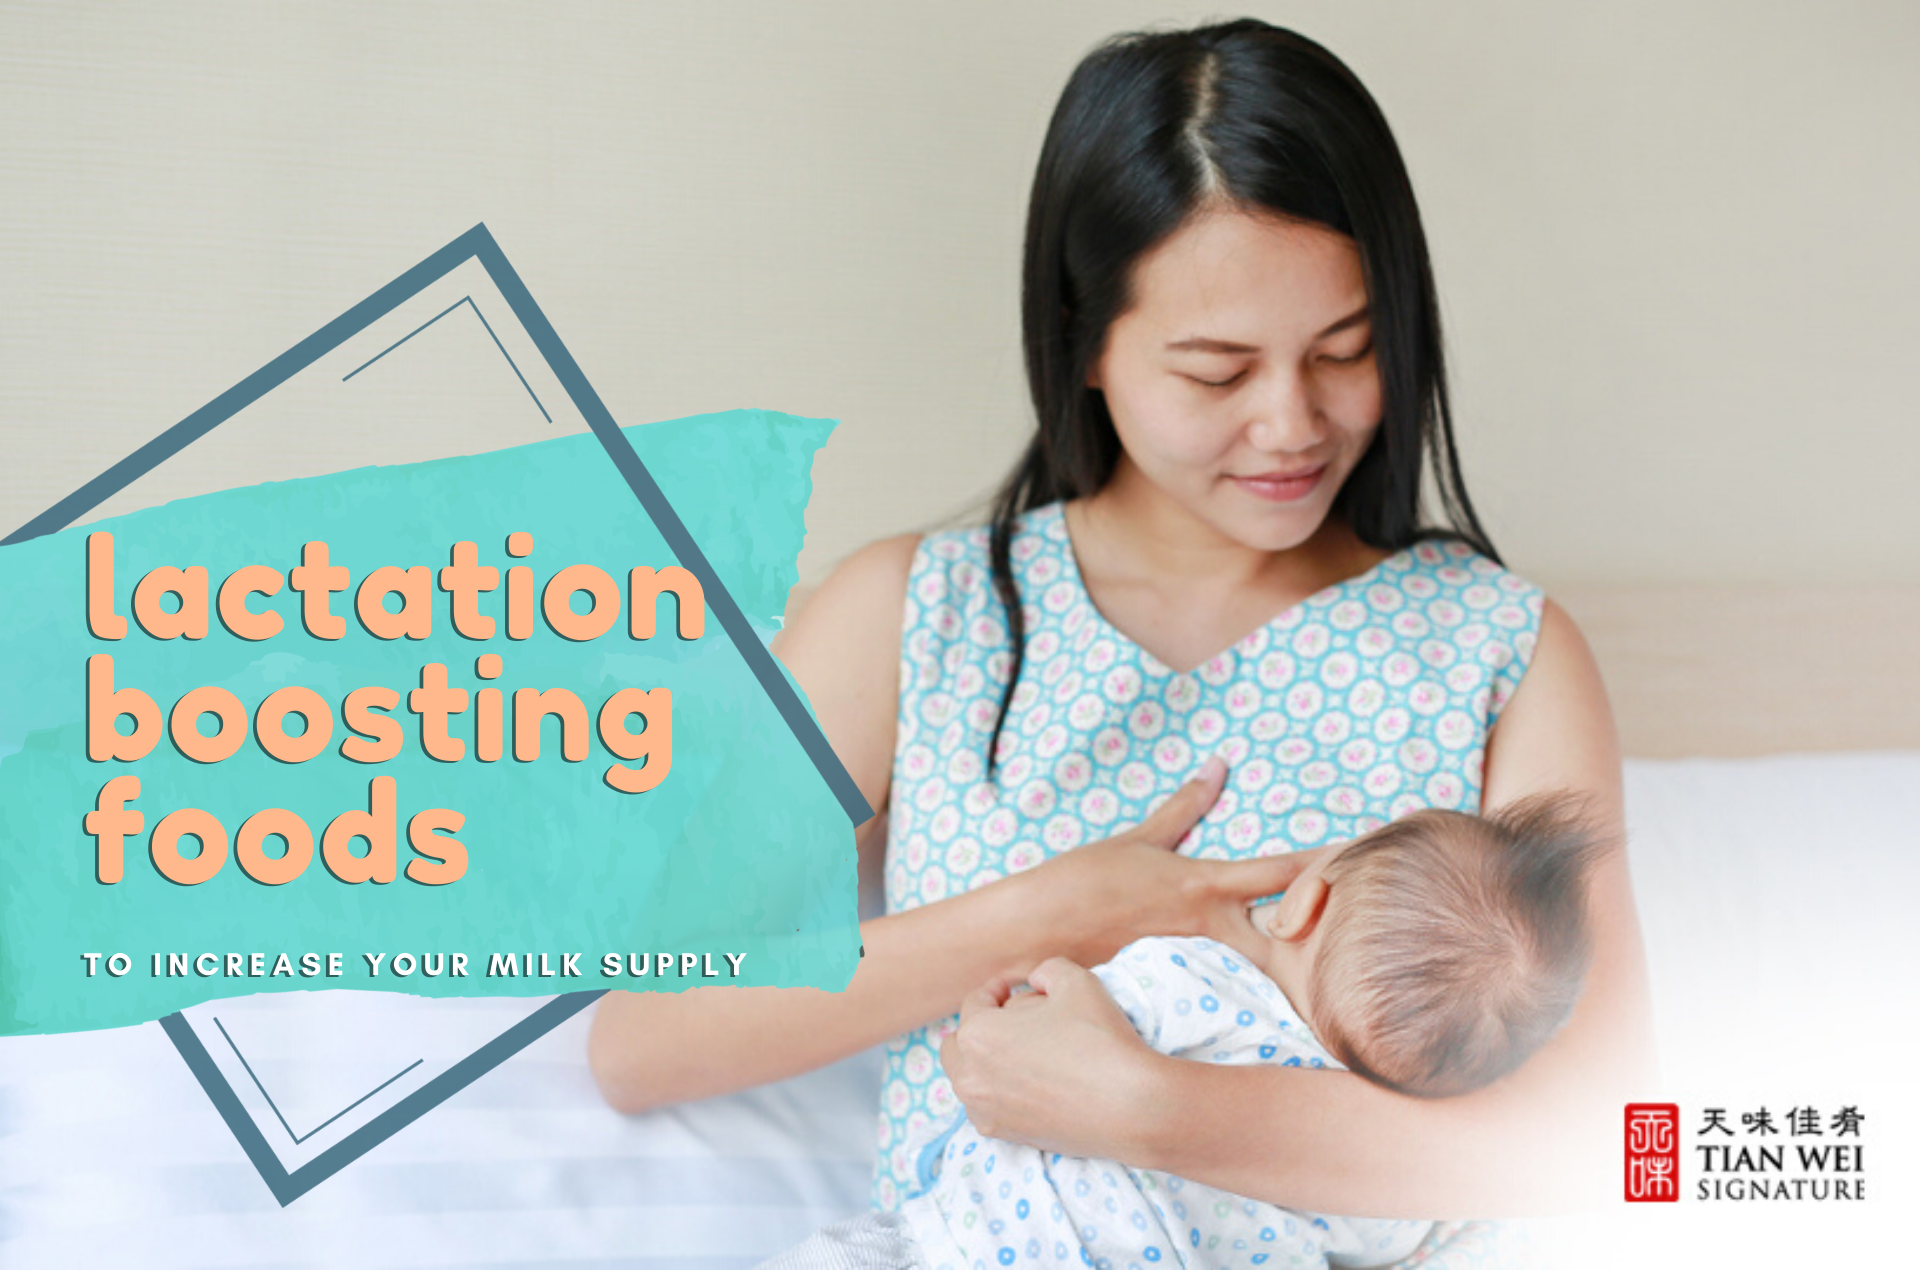 Lactation-Boosting Foods to Increase Your Milk Supply